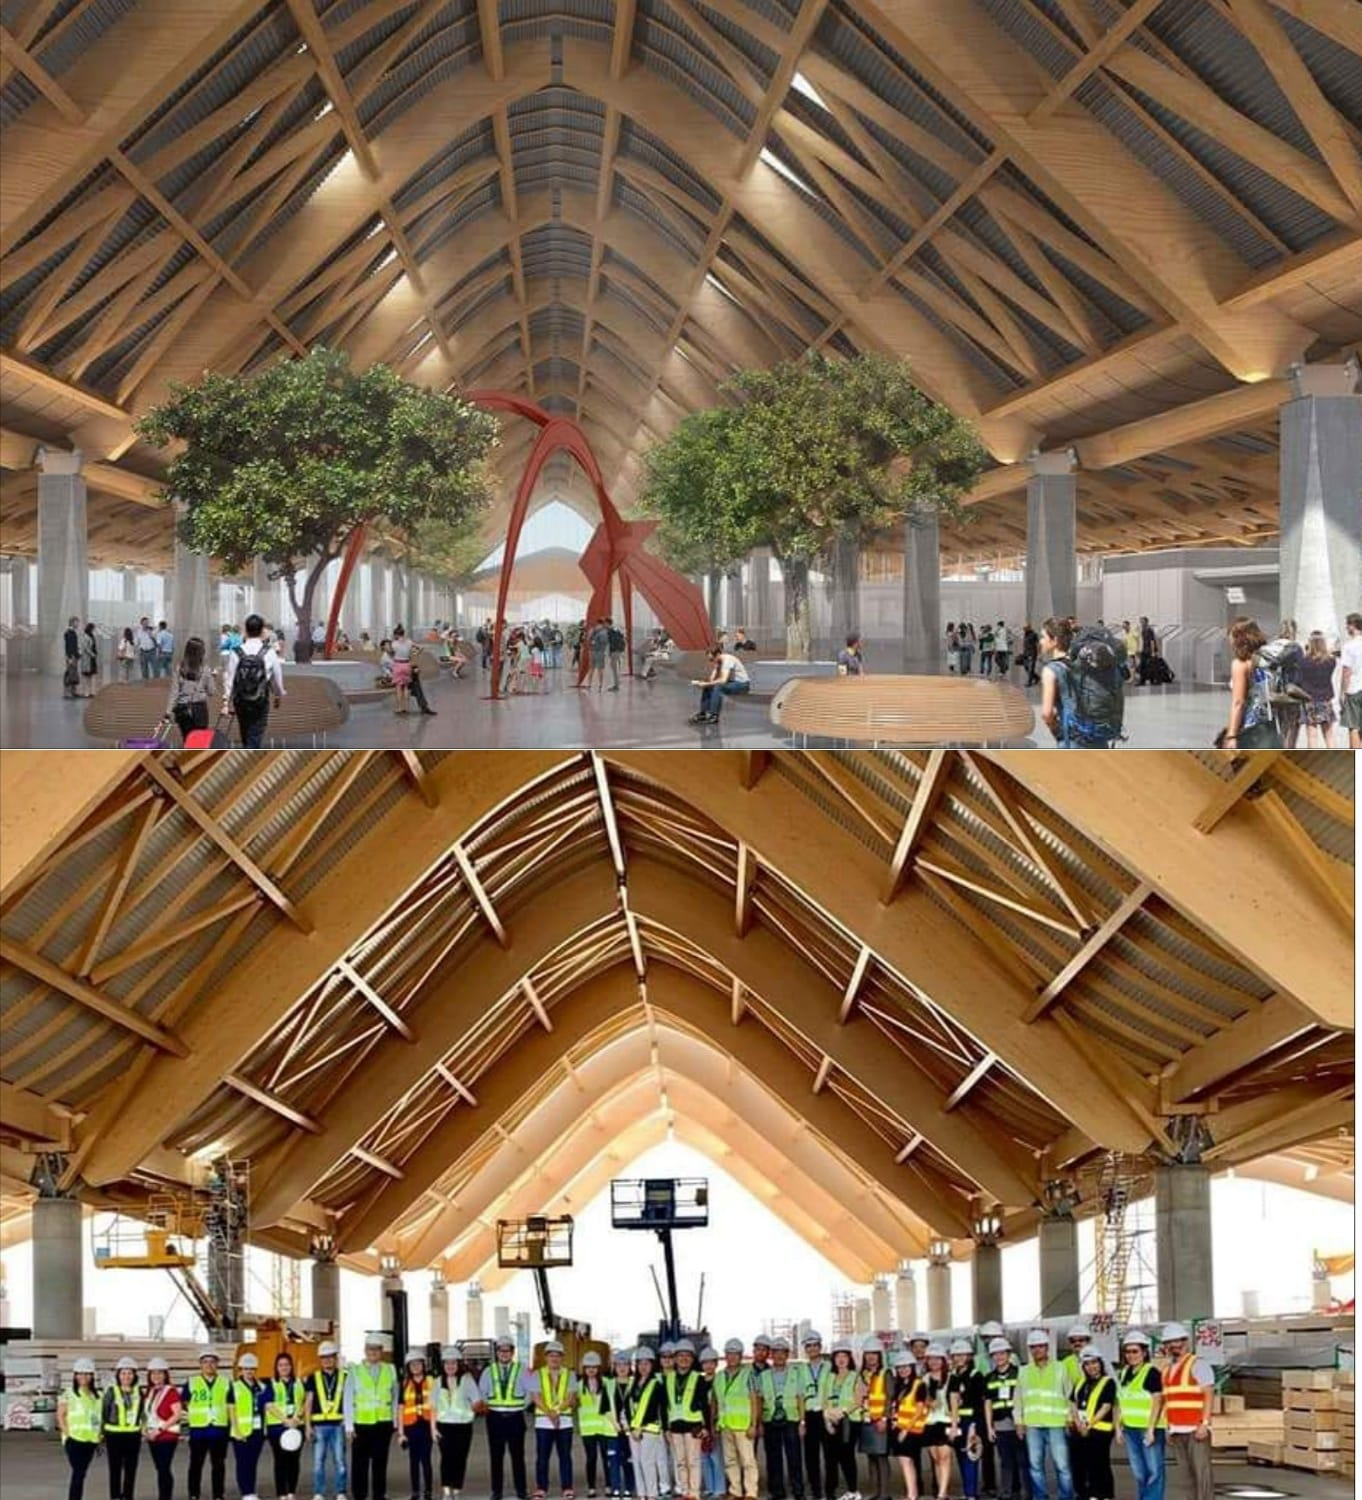 Clark International Airport Set to Open This Year, World-Class Features Revealed